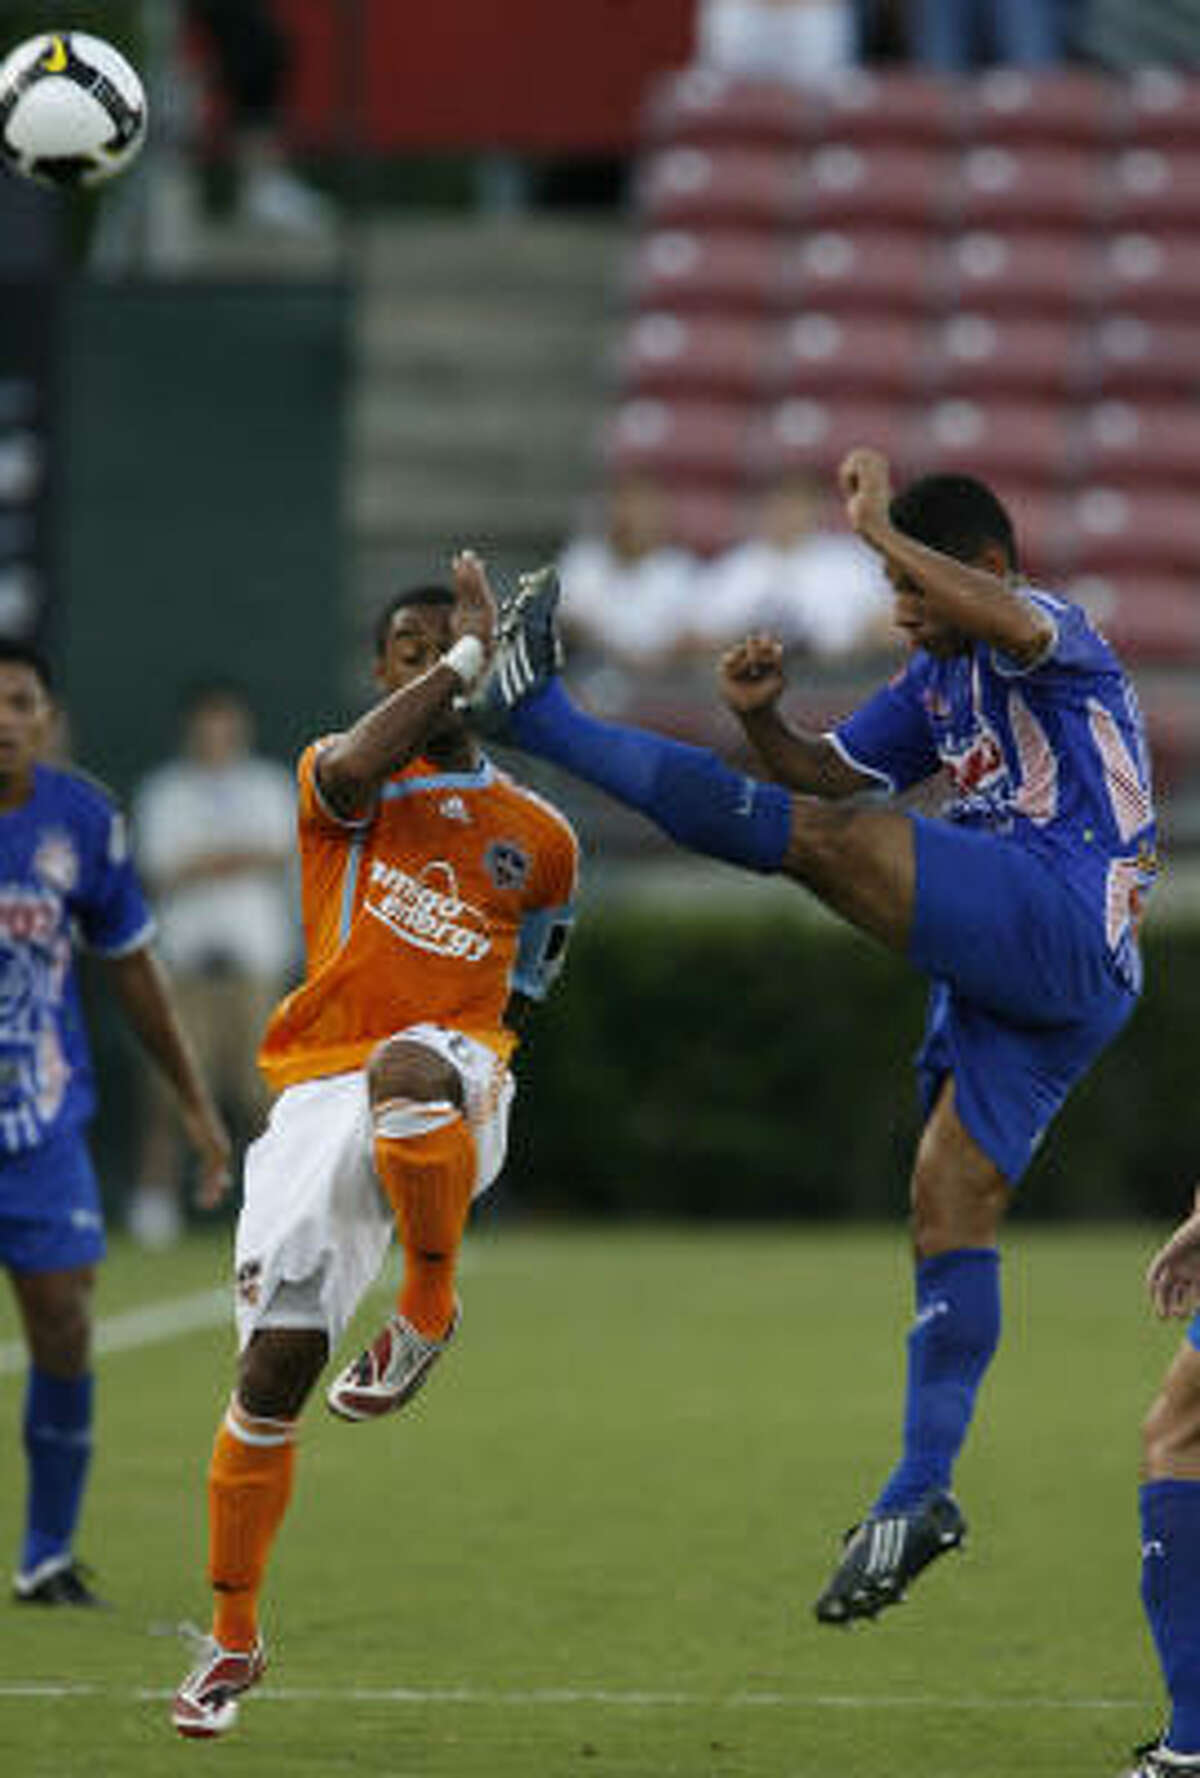 A.D. Isidro Metapan's Mario Edgardo Aguilar, right, gets his foot high near the head of Dynamo midfielder Corey Ashe.